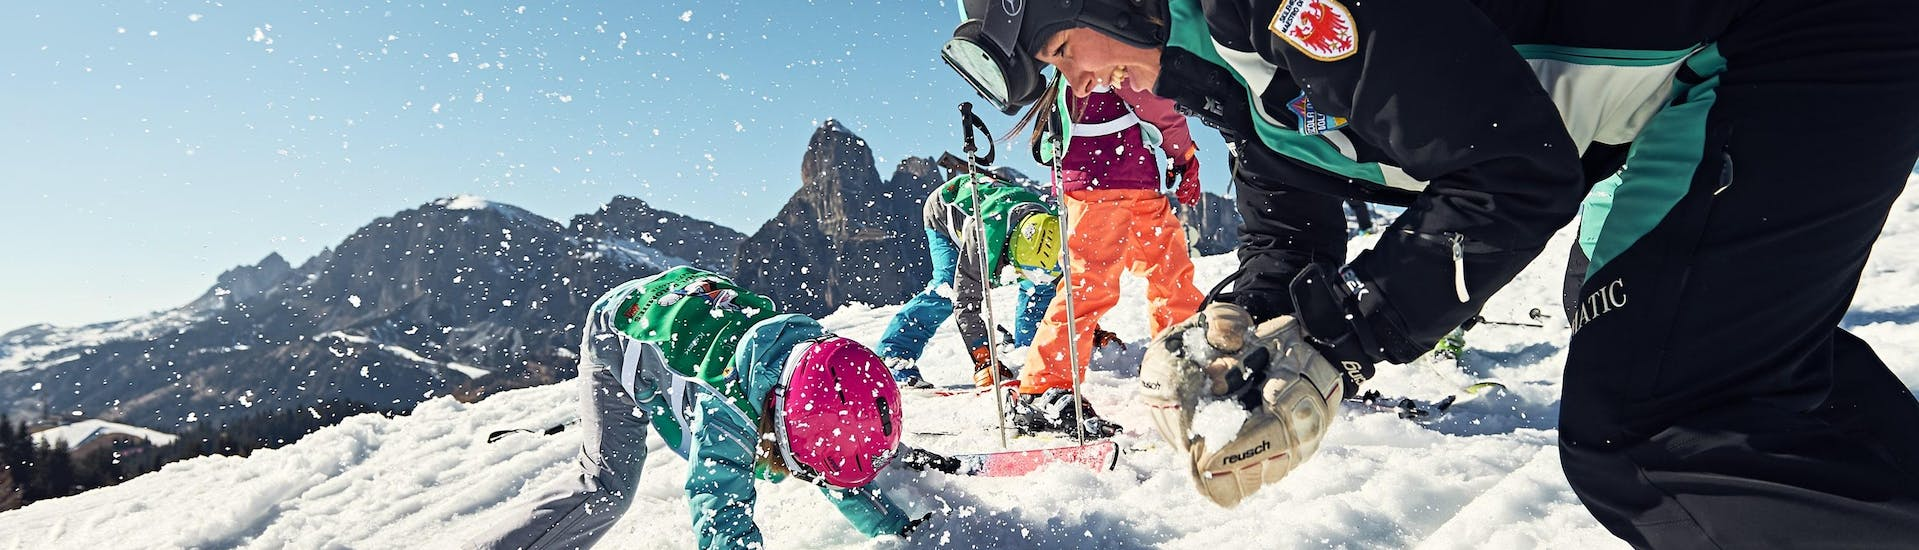 Kids Ski Lessons (4-12 y.) for All Levels - Holidays